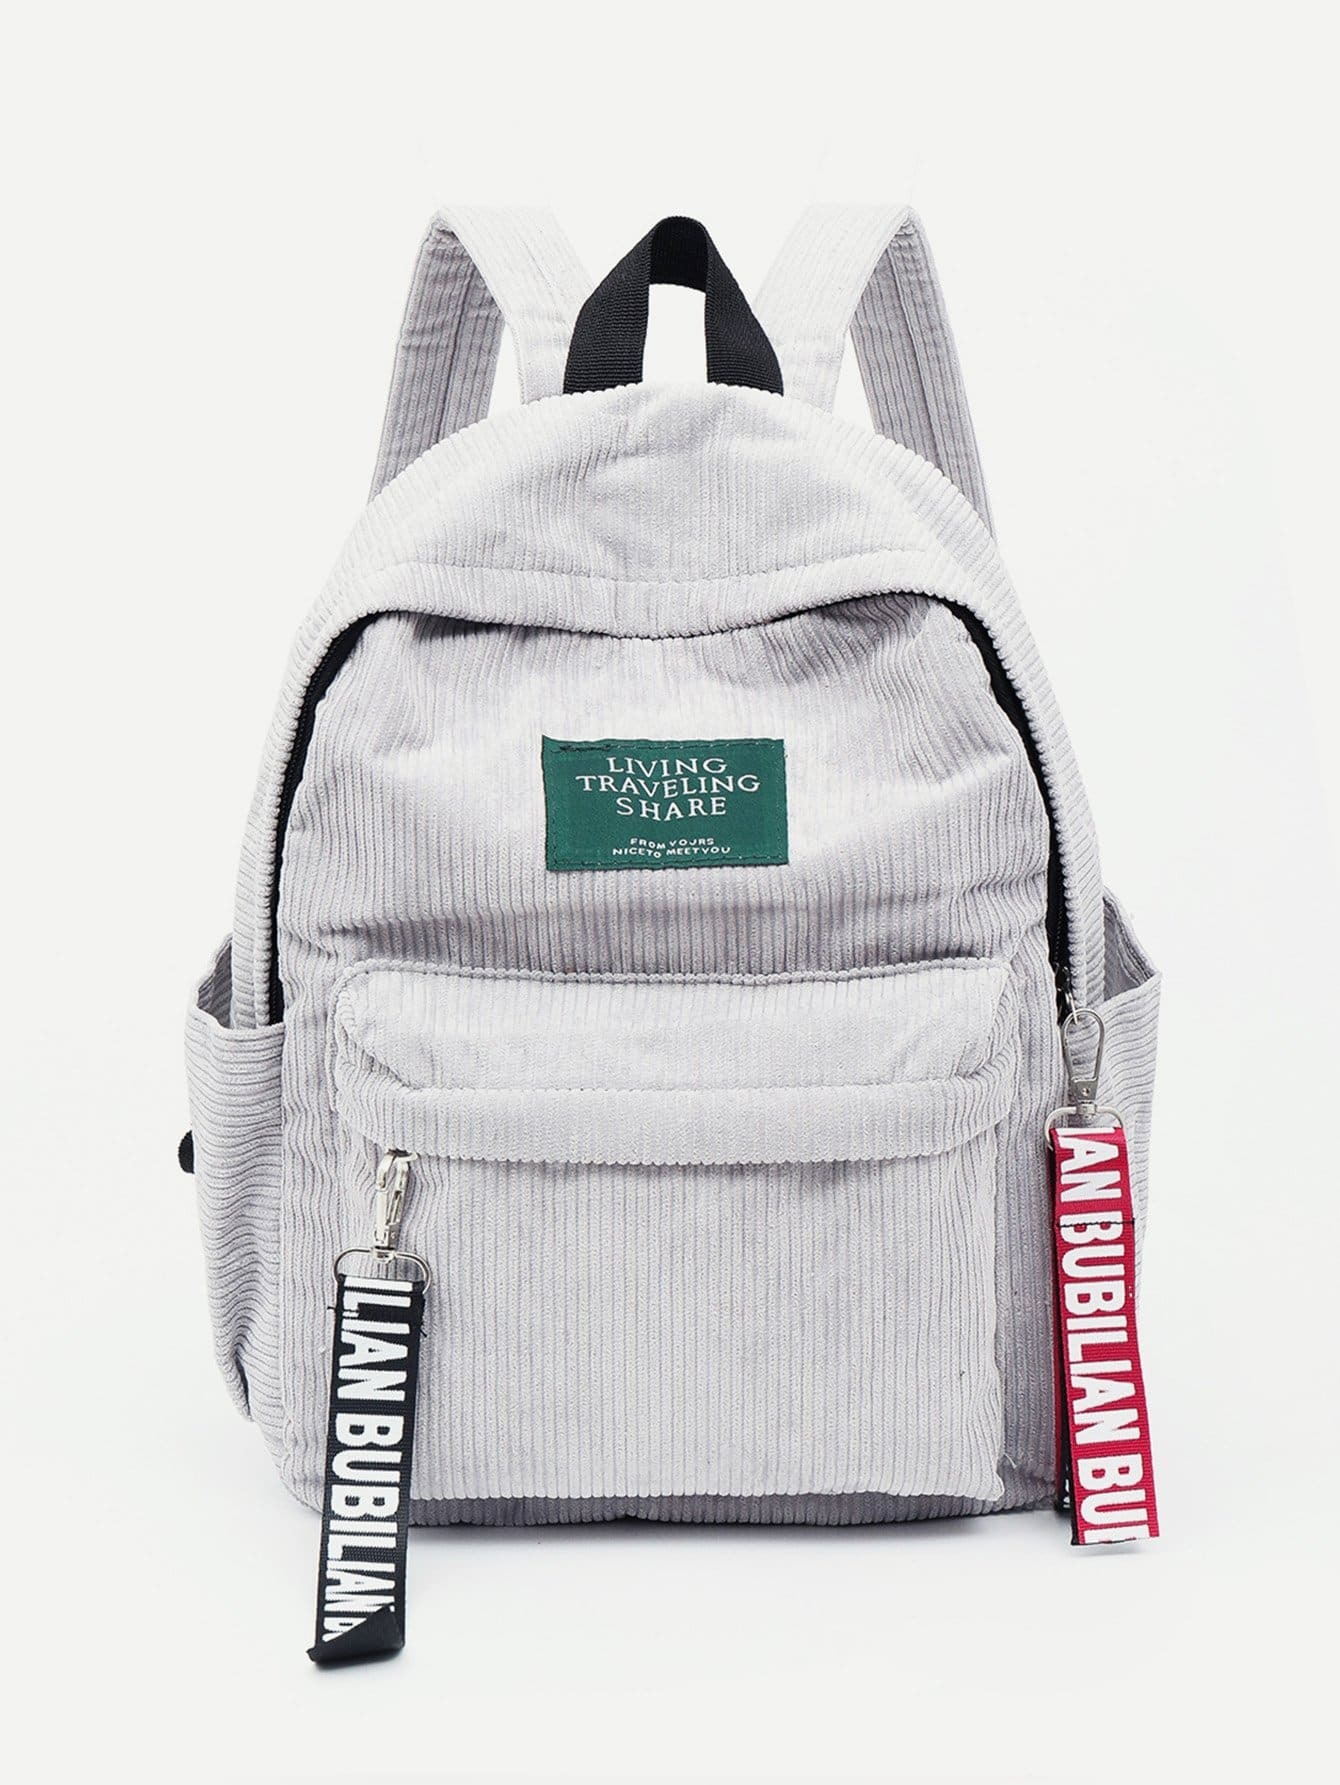 Slogan Ribbon Corduroy Backpack han edition of the new joker food corduroy corduroy backpack male and female college students bag contracted wind backpack